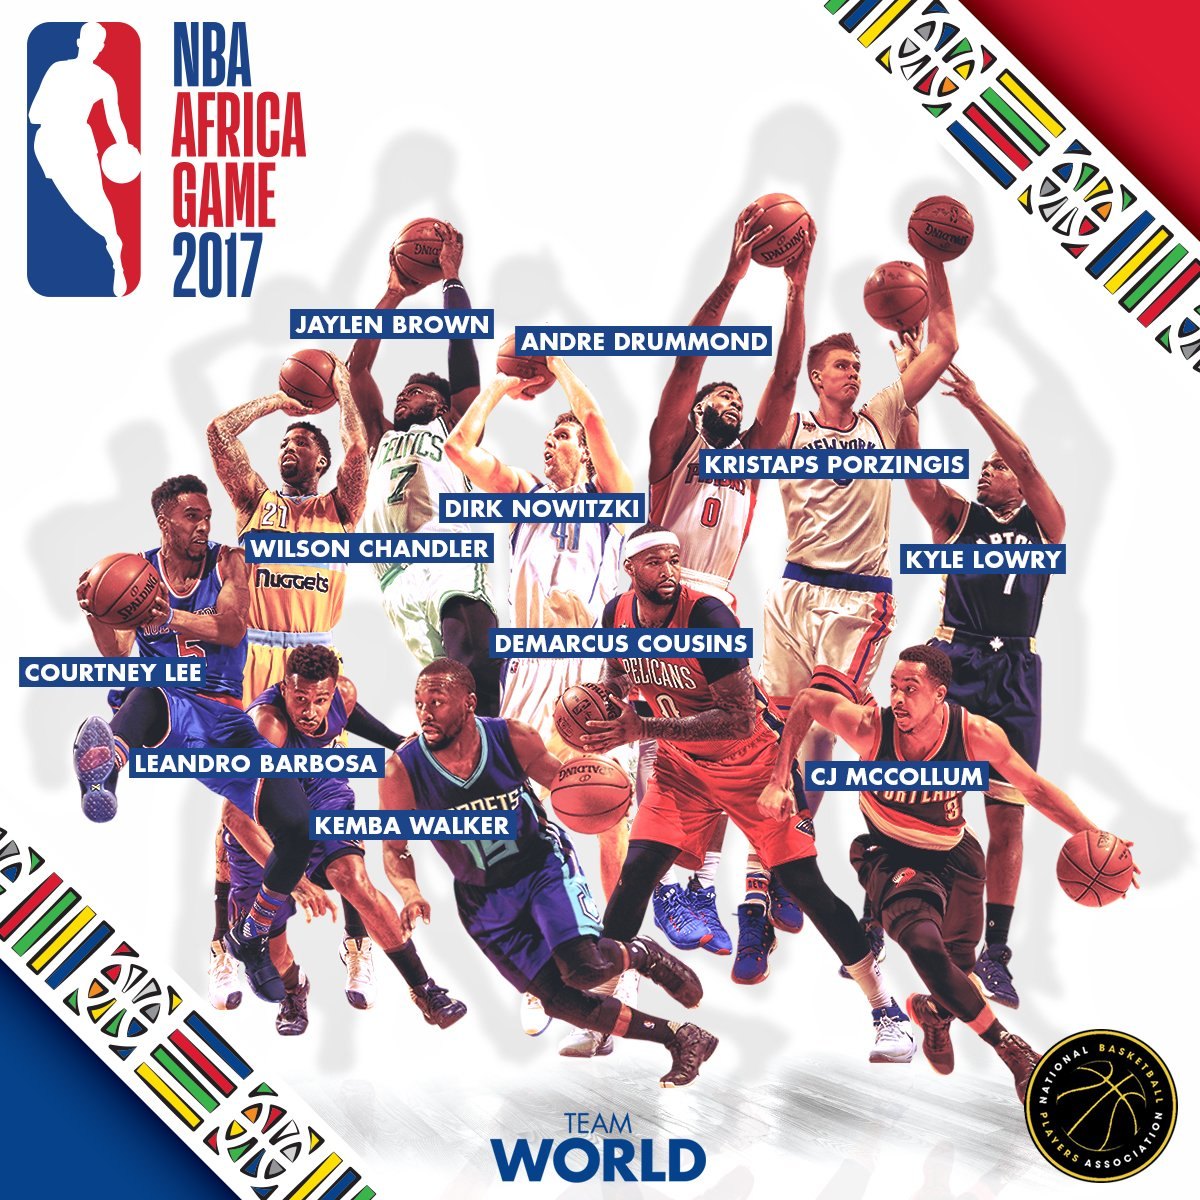 NBA announces Africa Game rosters